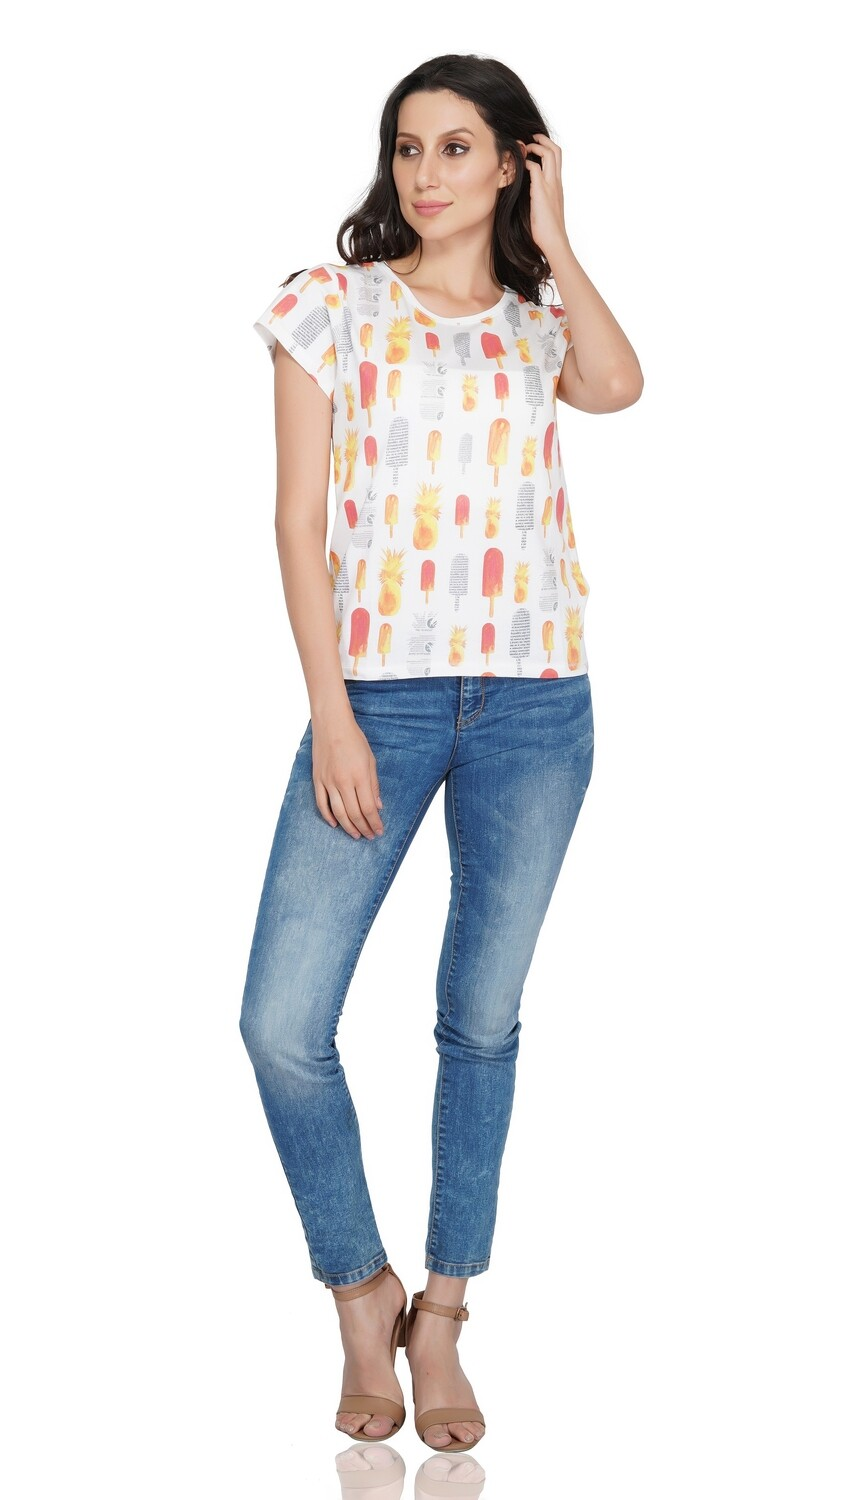 White Popsicle and Pineapple Print T-Shirt